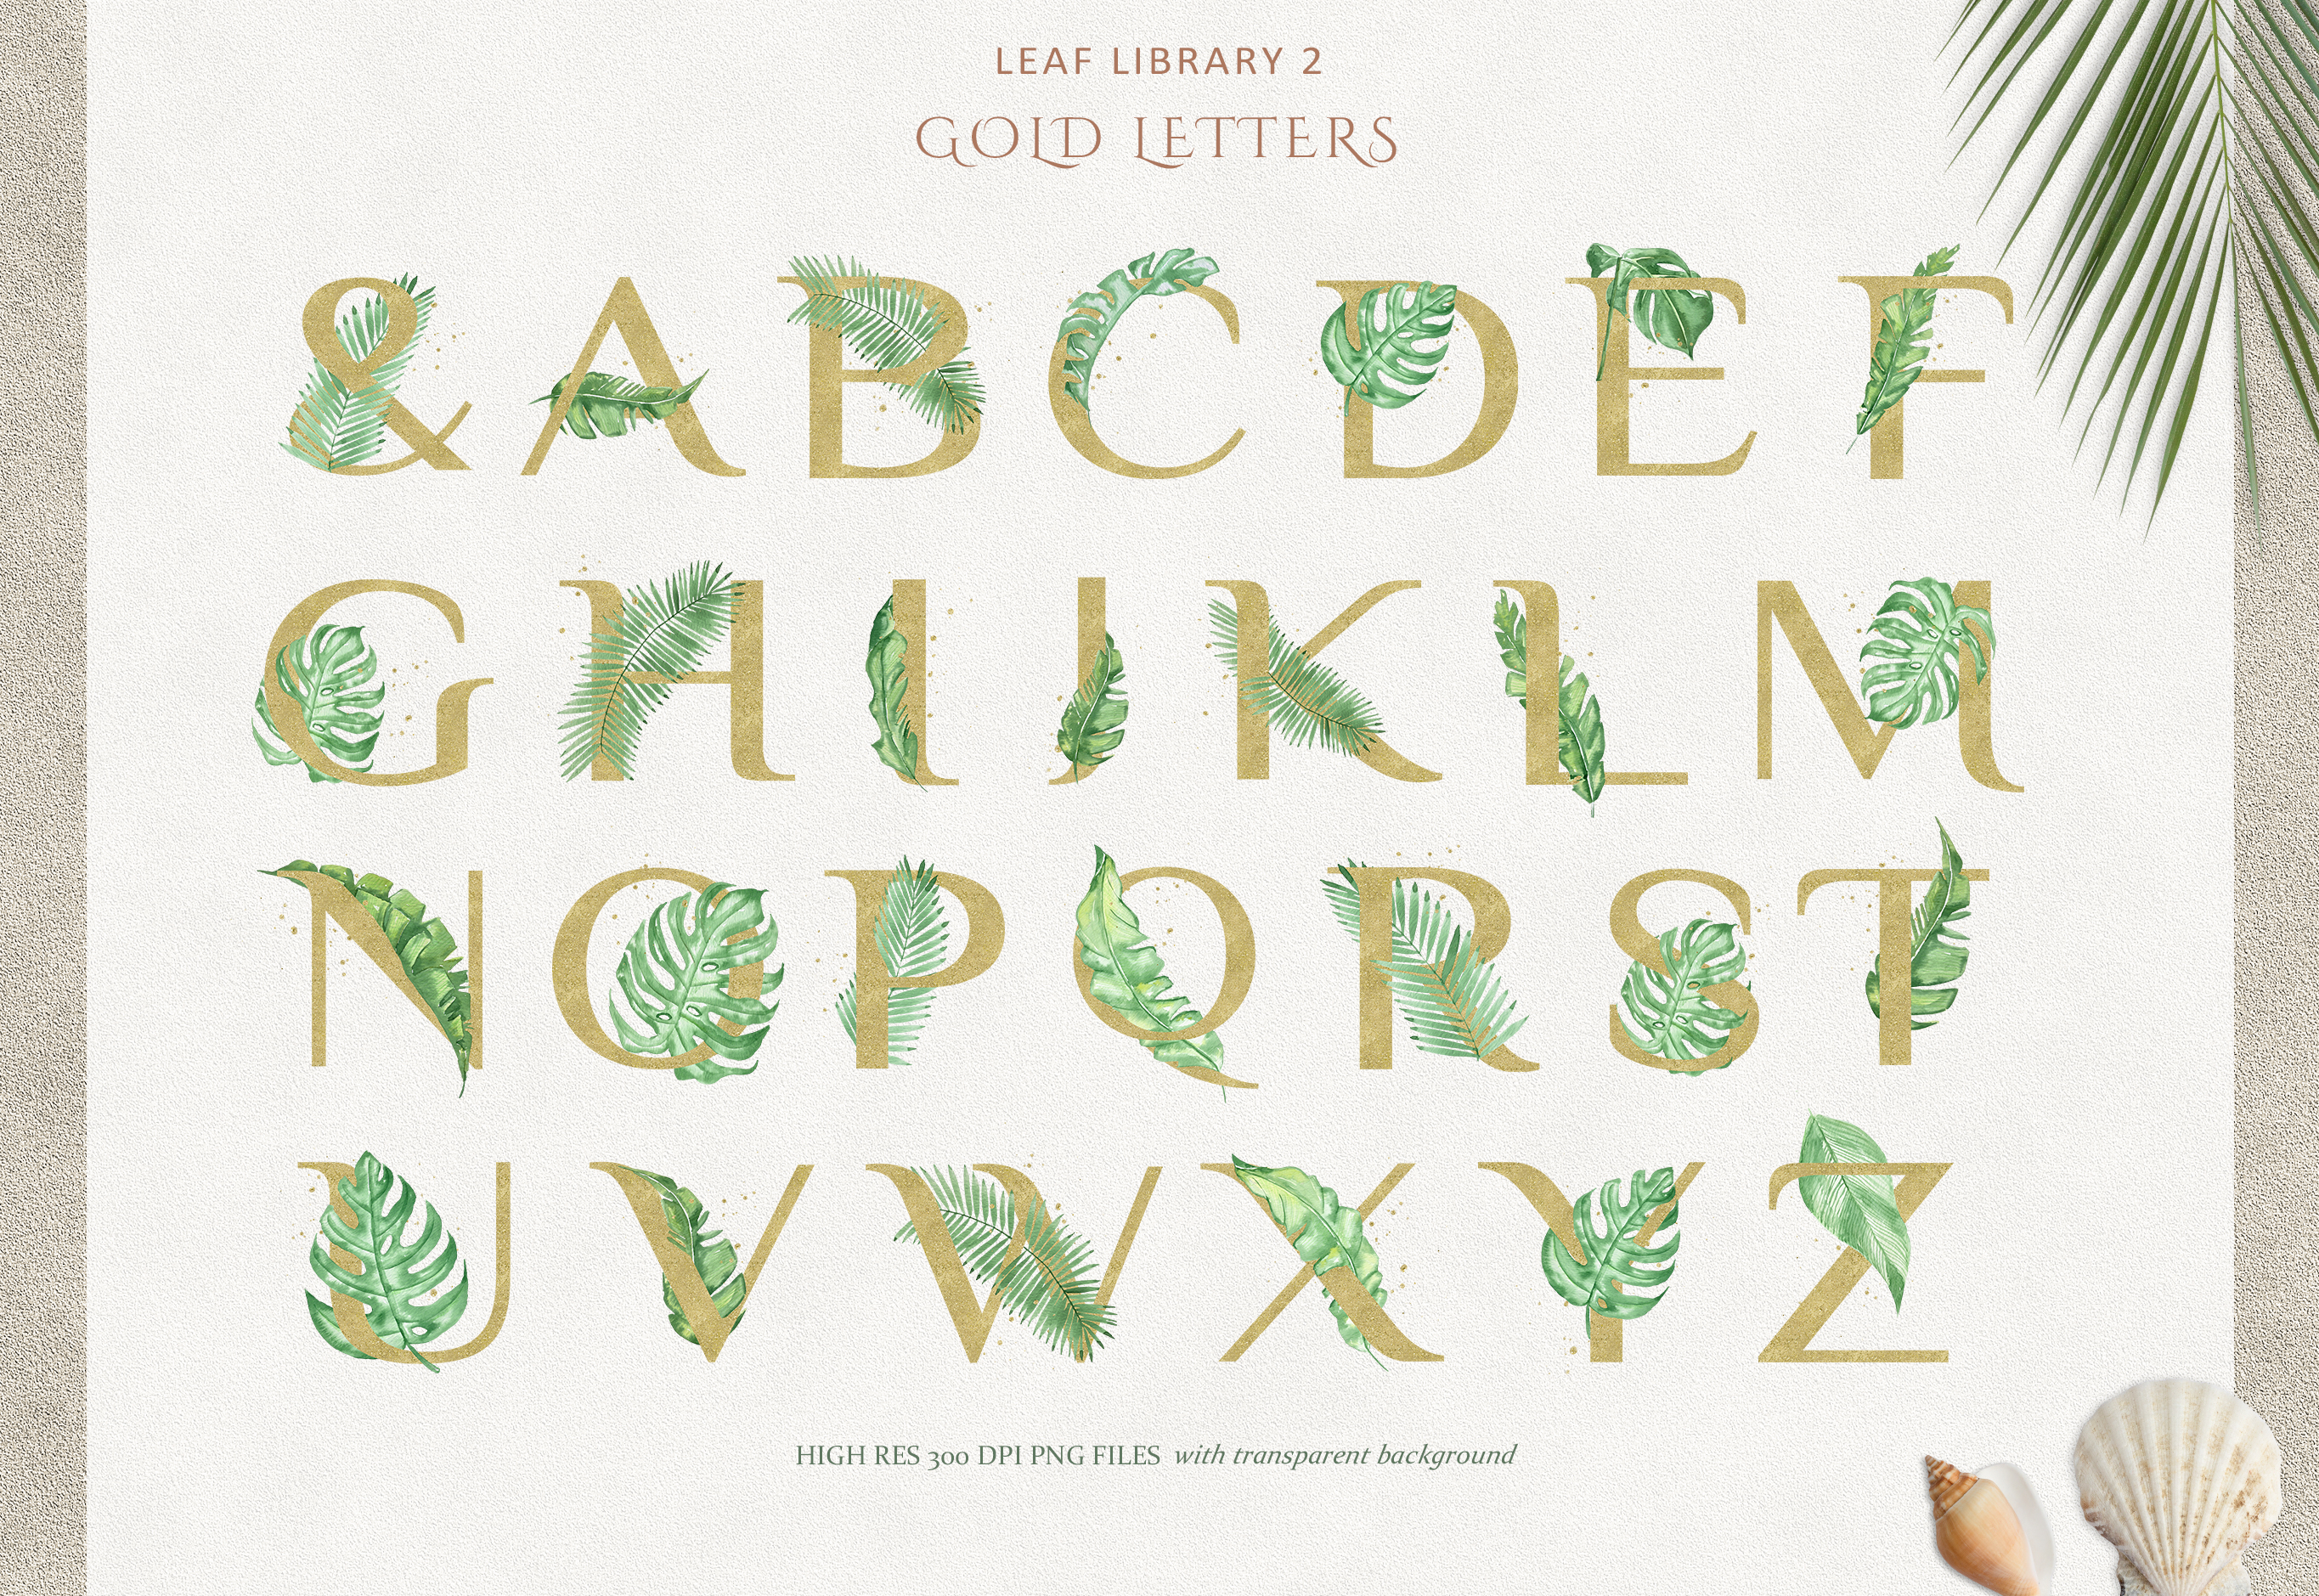 Greenery and Gold Leaf Library II example image 7